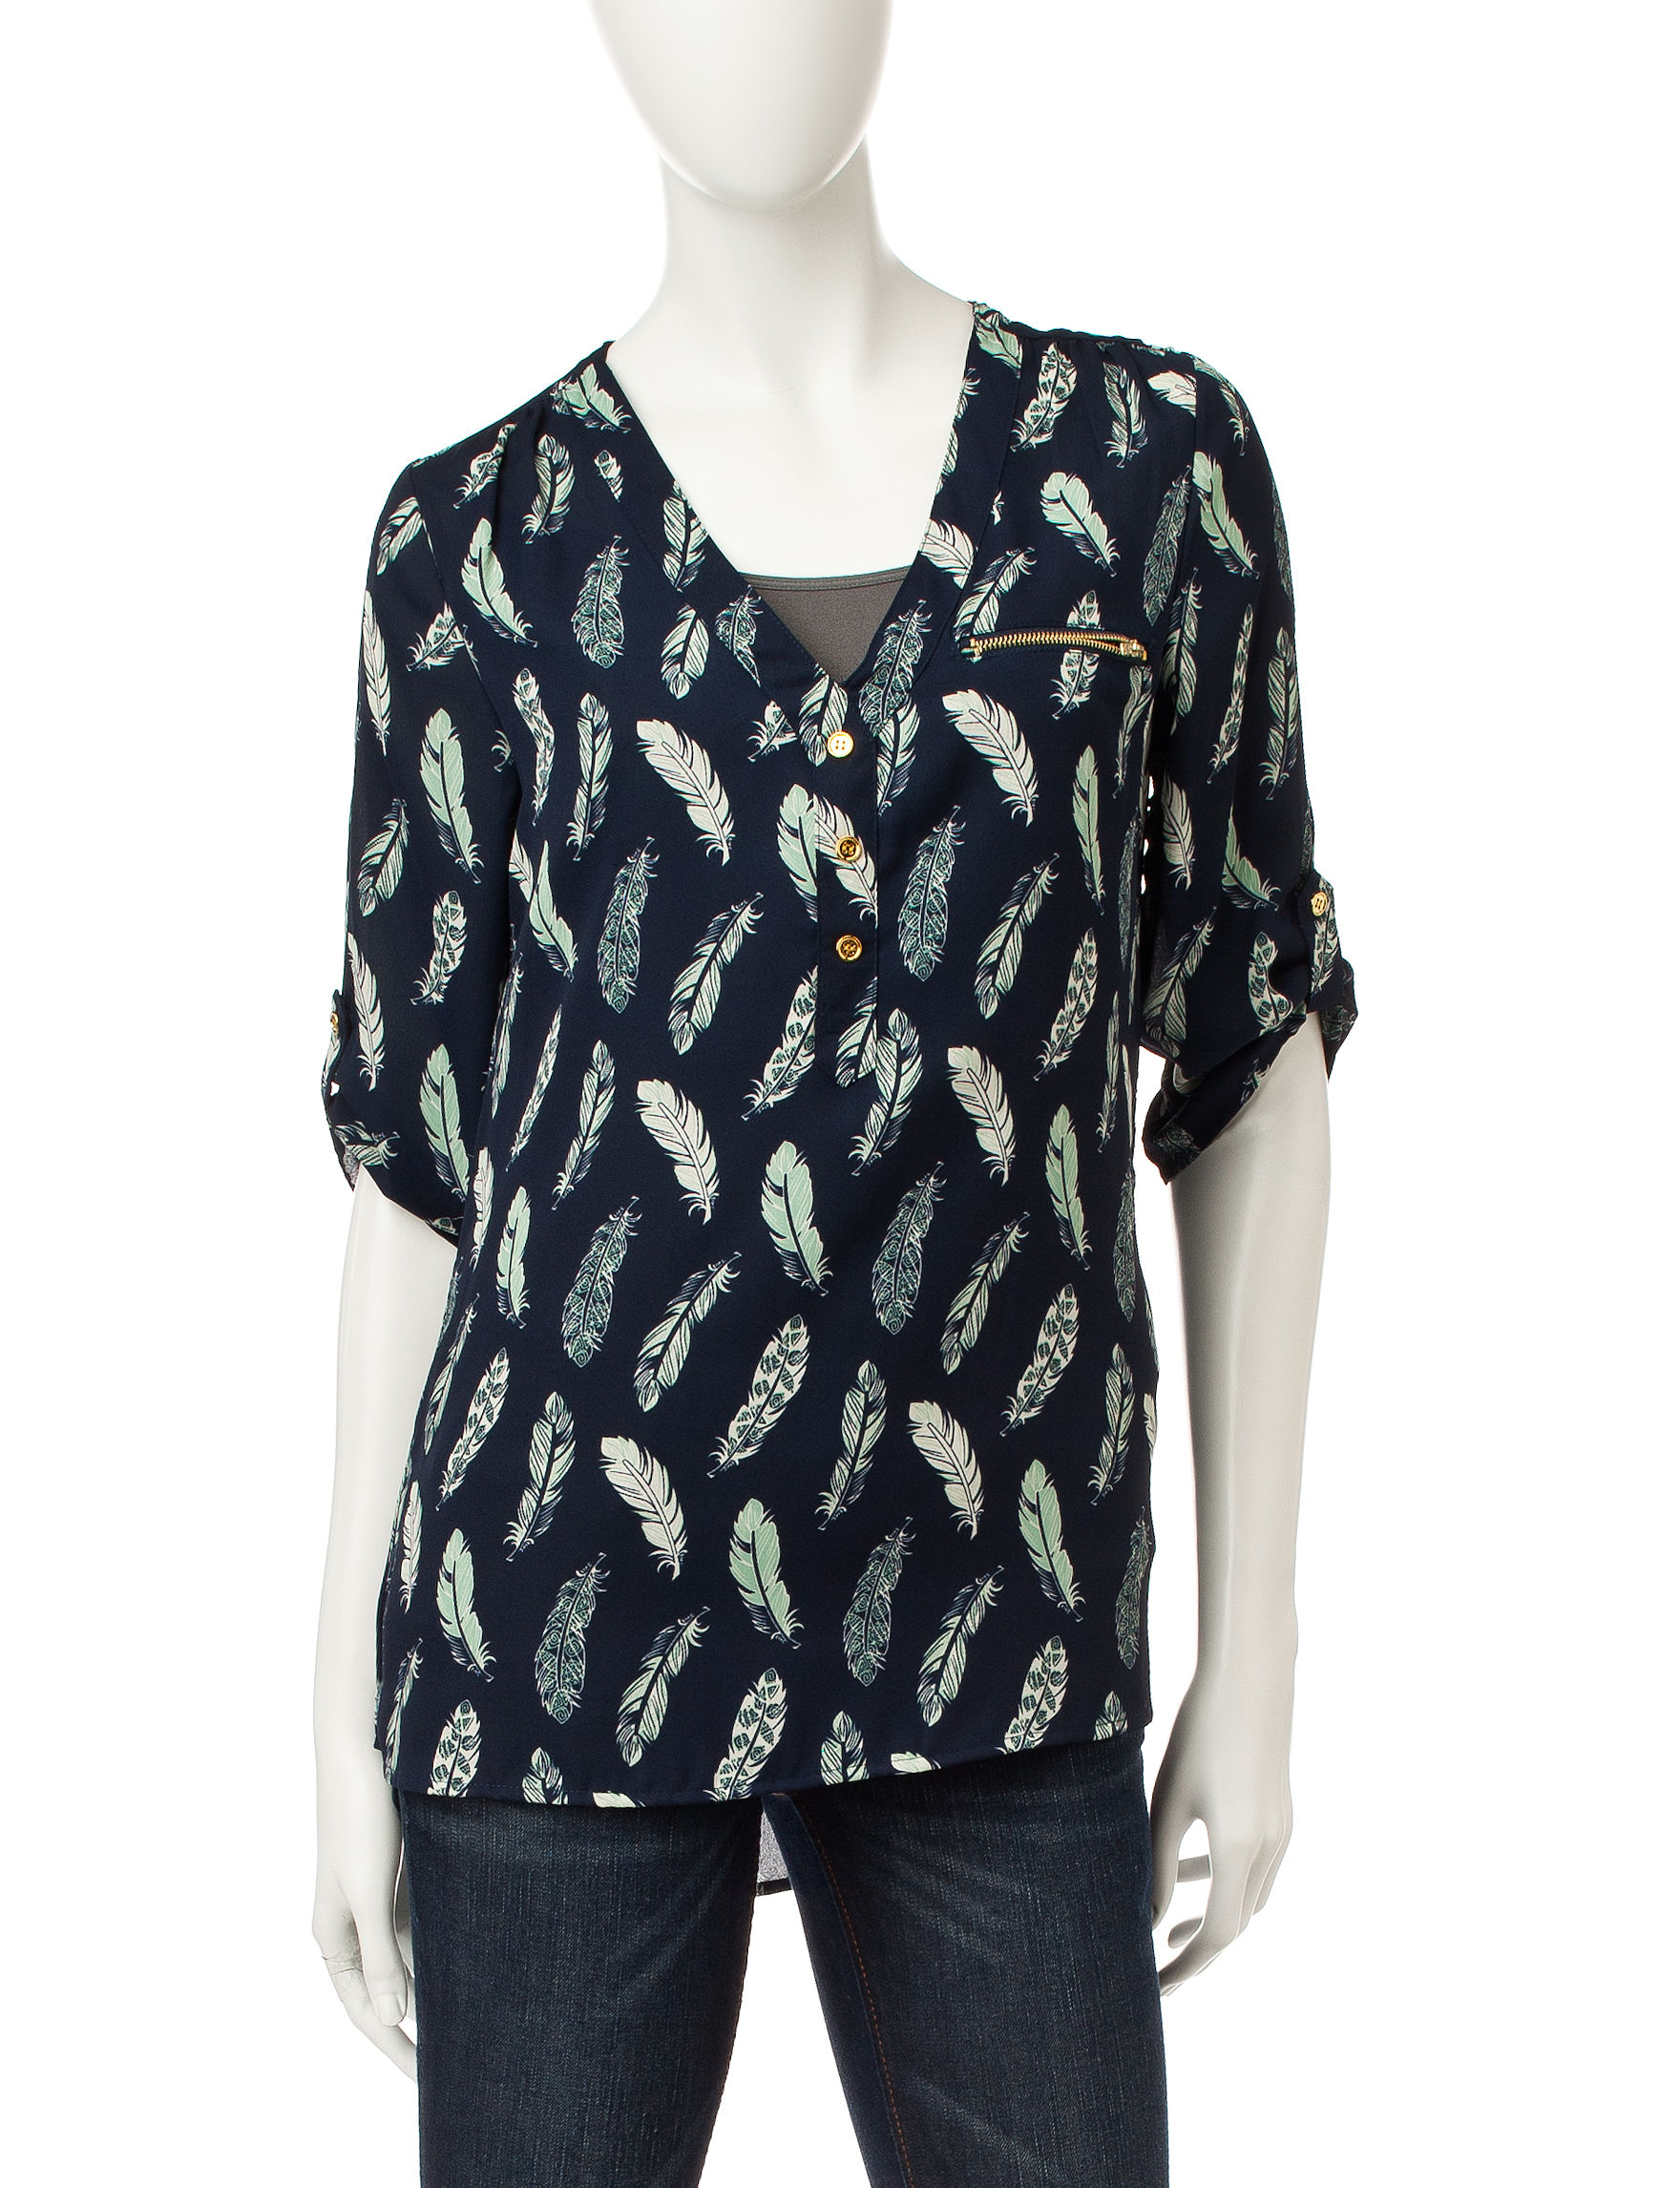 Wishful Park Navy Pull-overs Shirts & Blouses